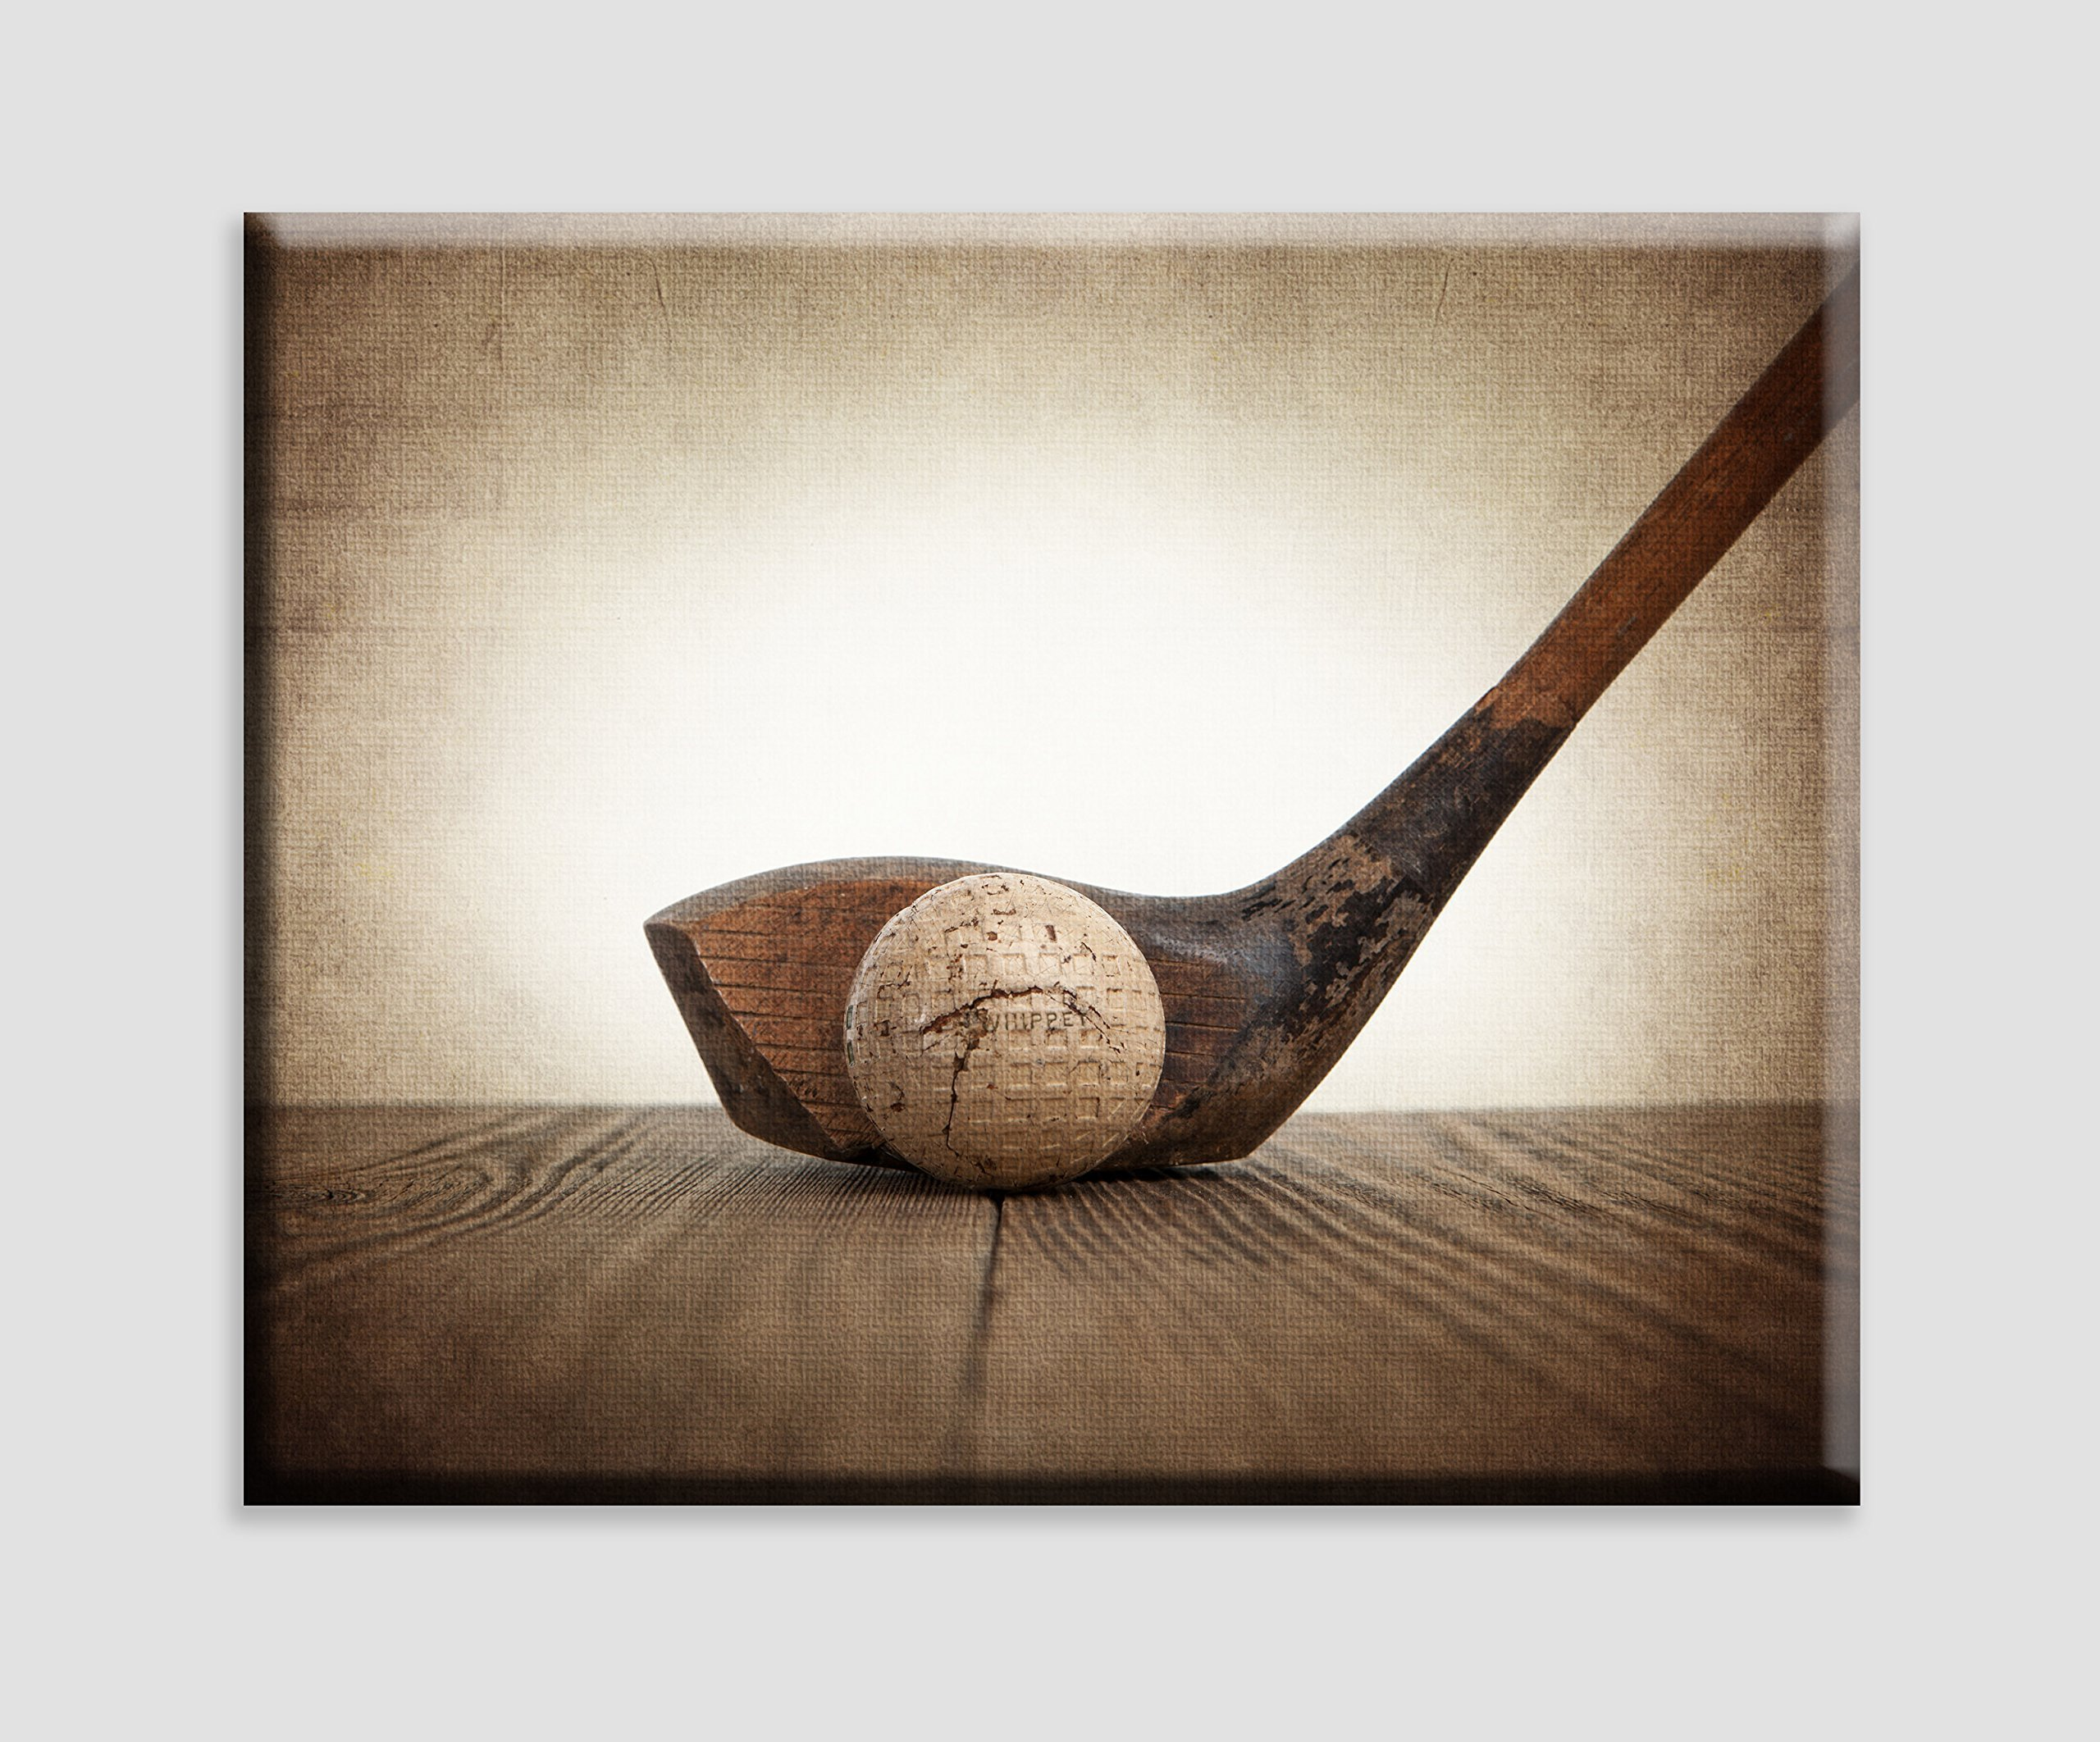 Vintage Golf Wood and Ball on Vintage Background Stretched Canvas Wall Art, Sports Decor, Golf Nursery decor, Man Cave art, Vintage Sports Nursery Art, Golf artwork, Sport Prints, Golf Photos